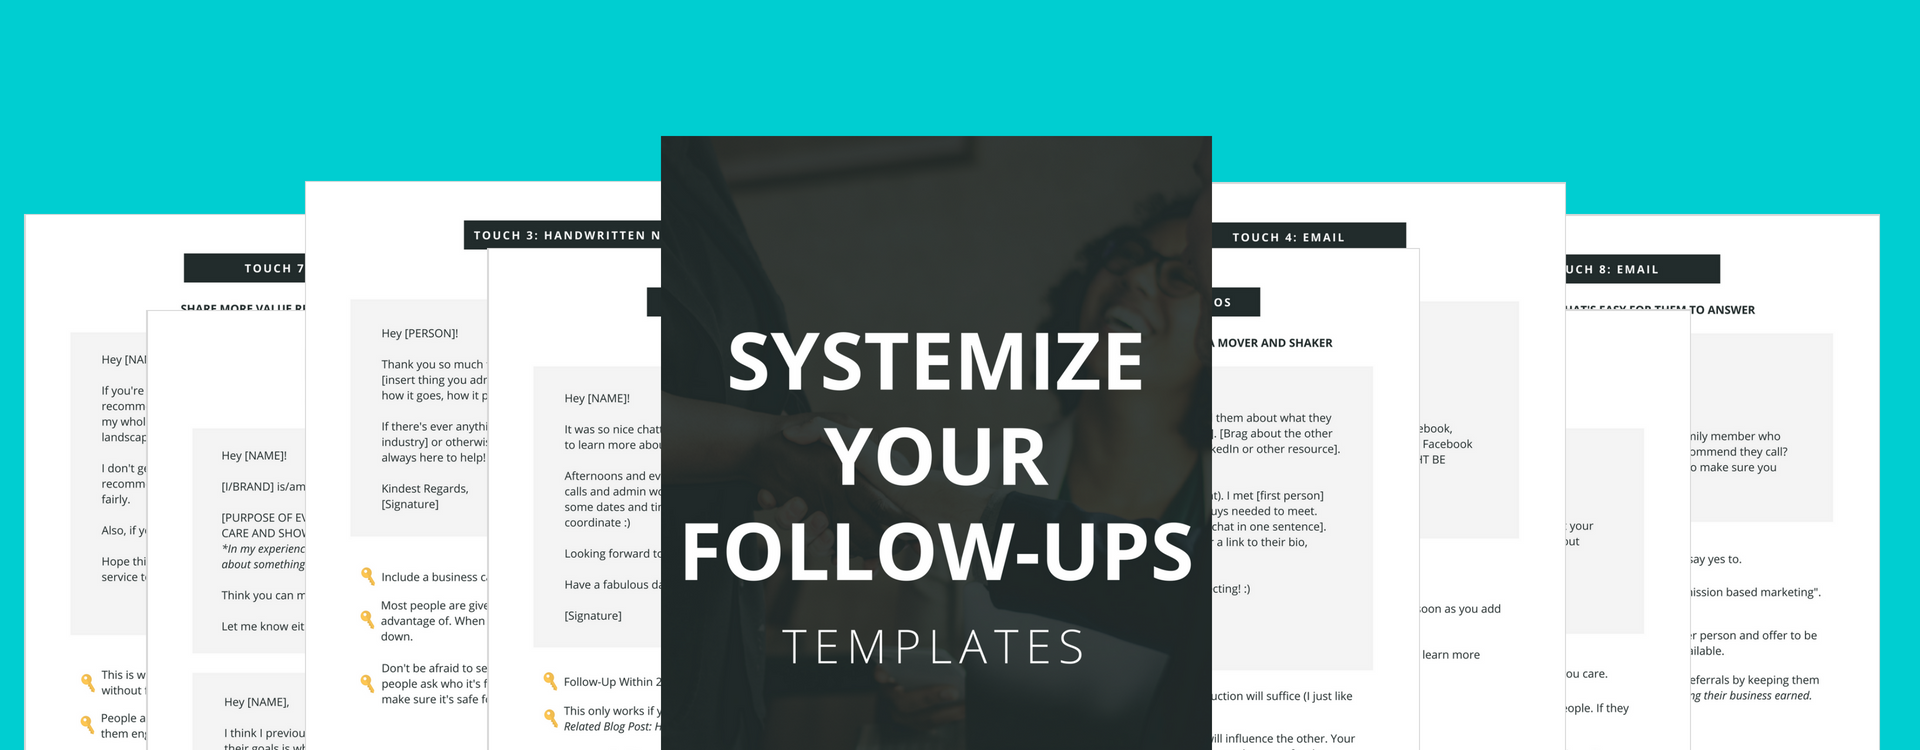 7 Must Have Networking Email Follow-Up Templates